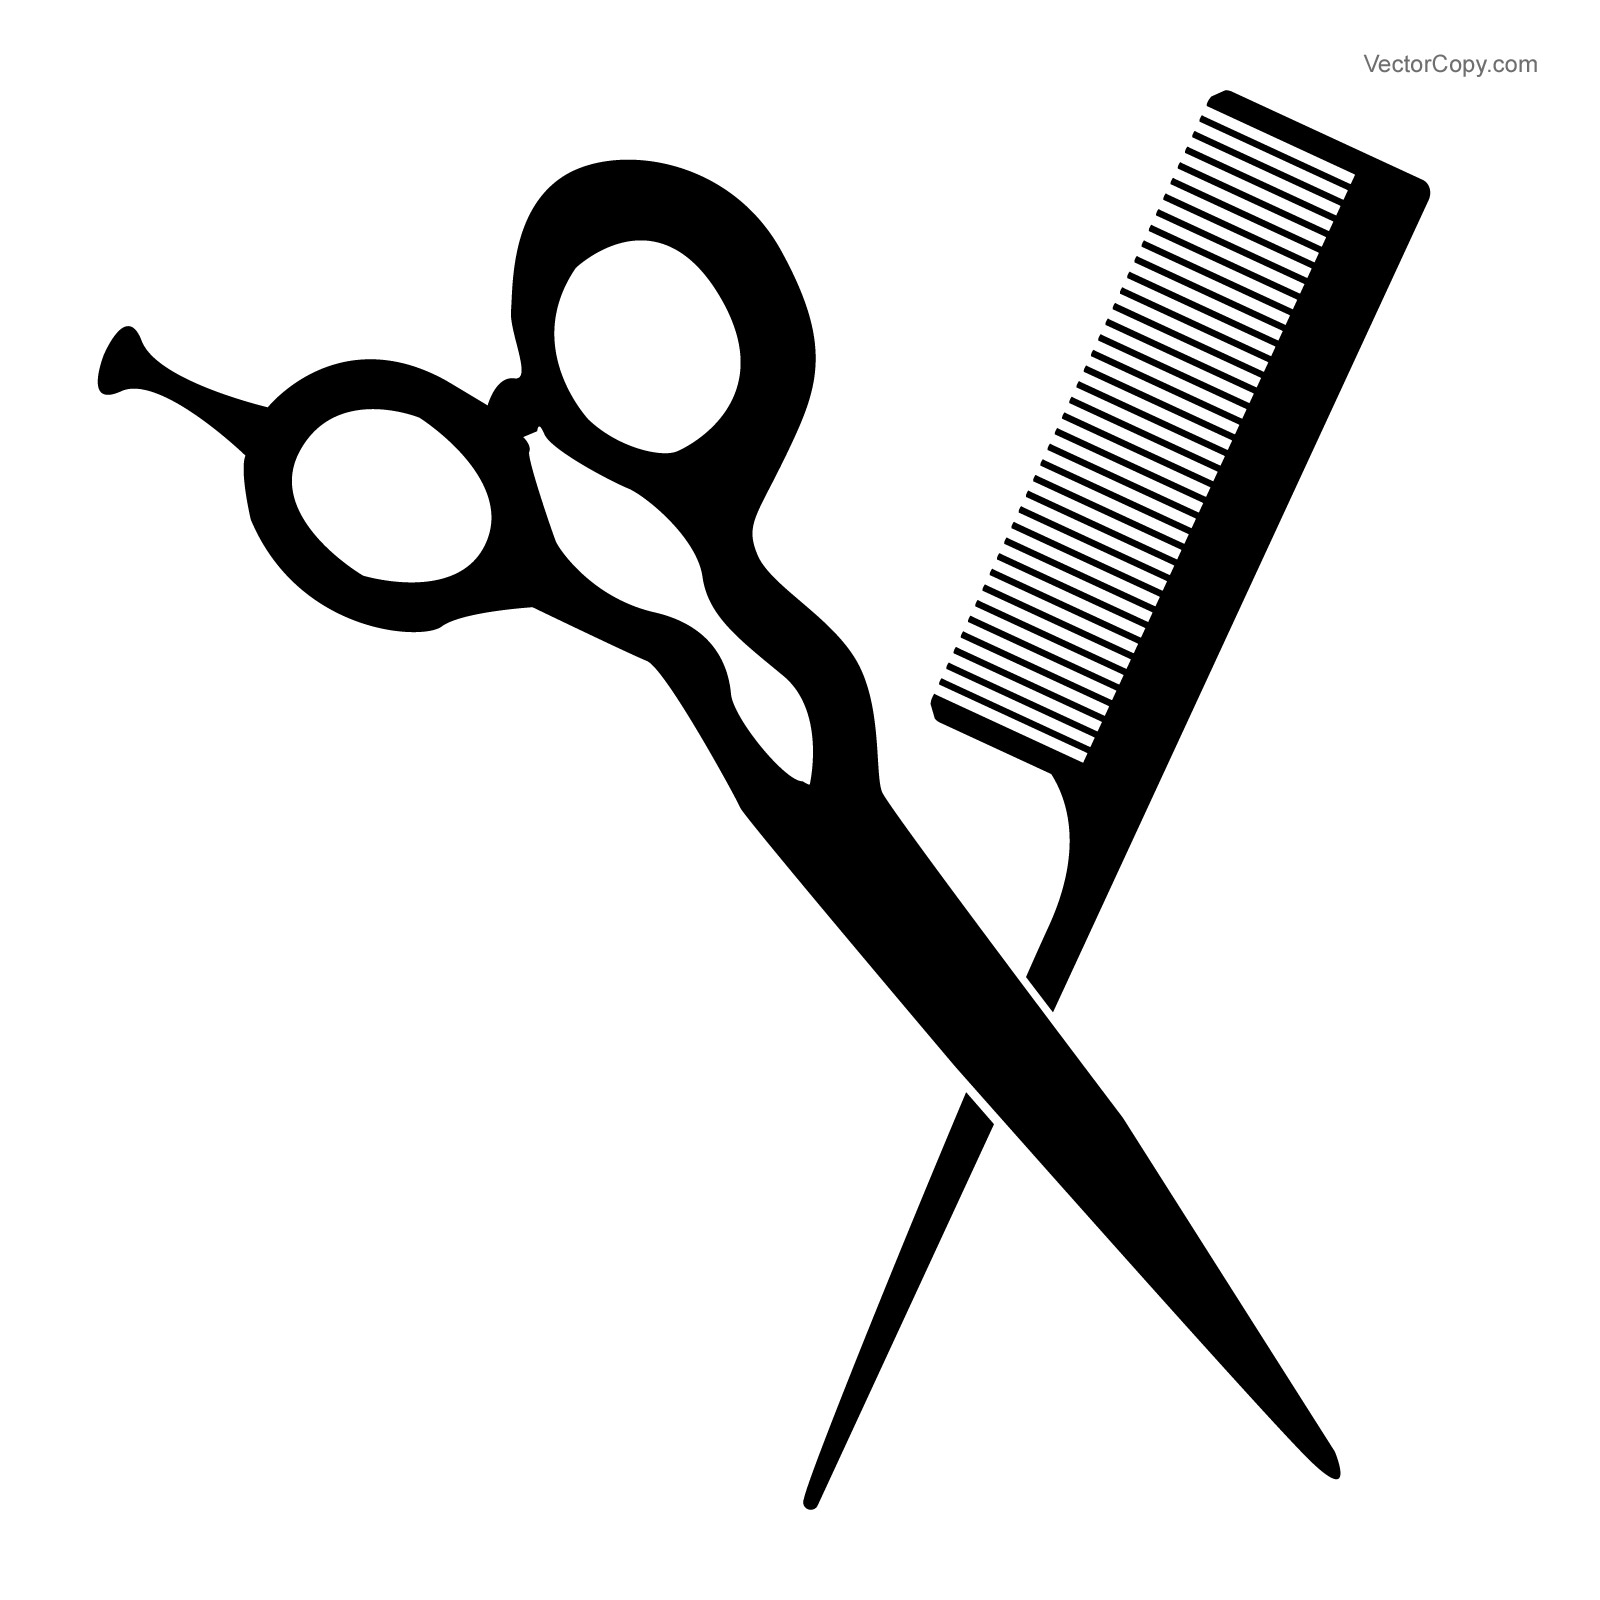 Comb and scissors clipart black and white image transparent Comb And Scissors Clipart | Free download best Comb And Scissors ... image transparent